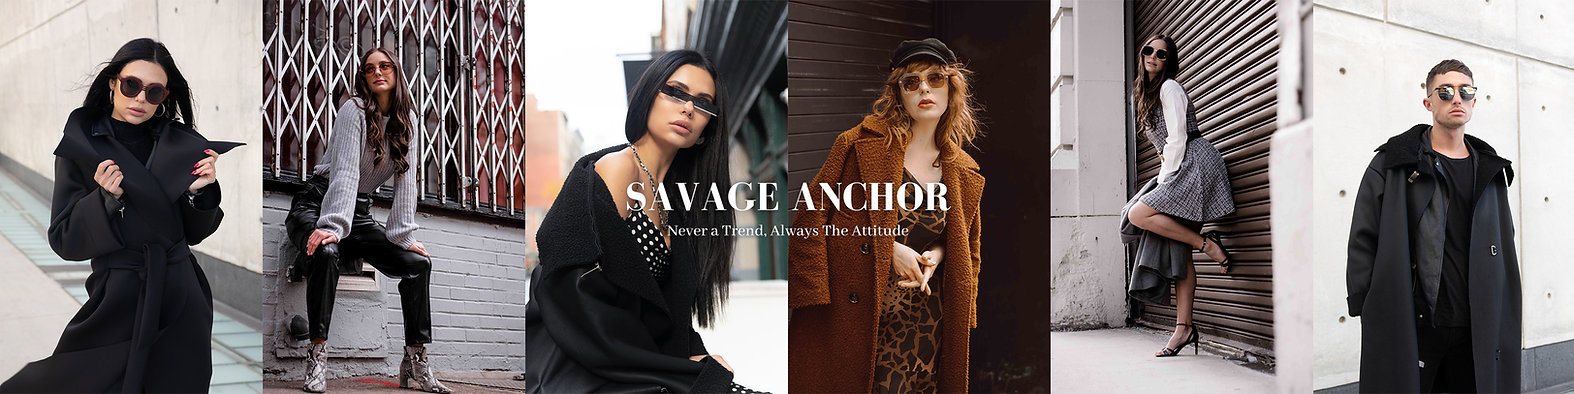 Savage Anchor Sunglasses